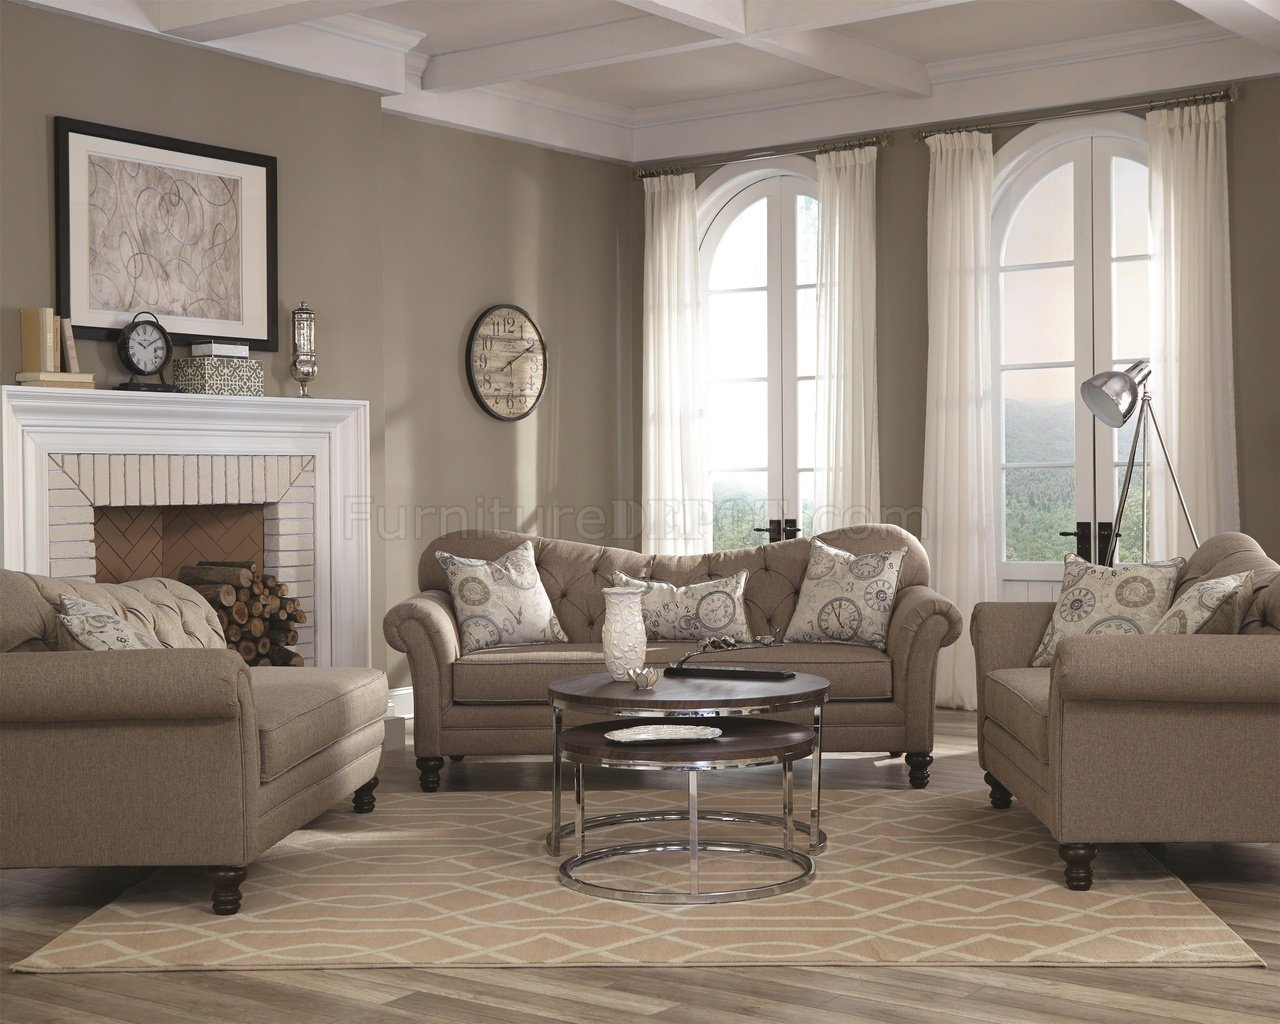 Franzoesische Sofa Sets With Separate Carnahan Sofa 505251 In Grey Fabric By Coaster W Options